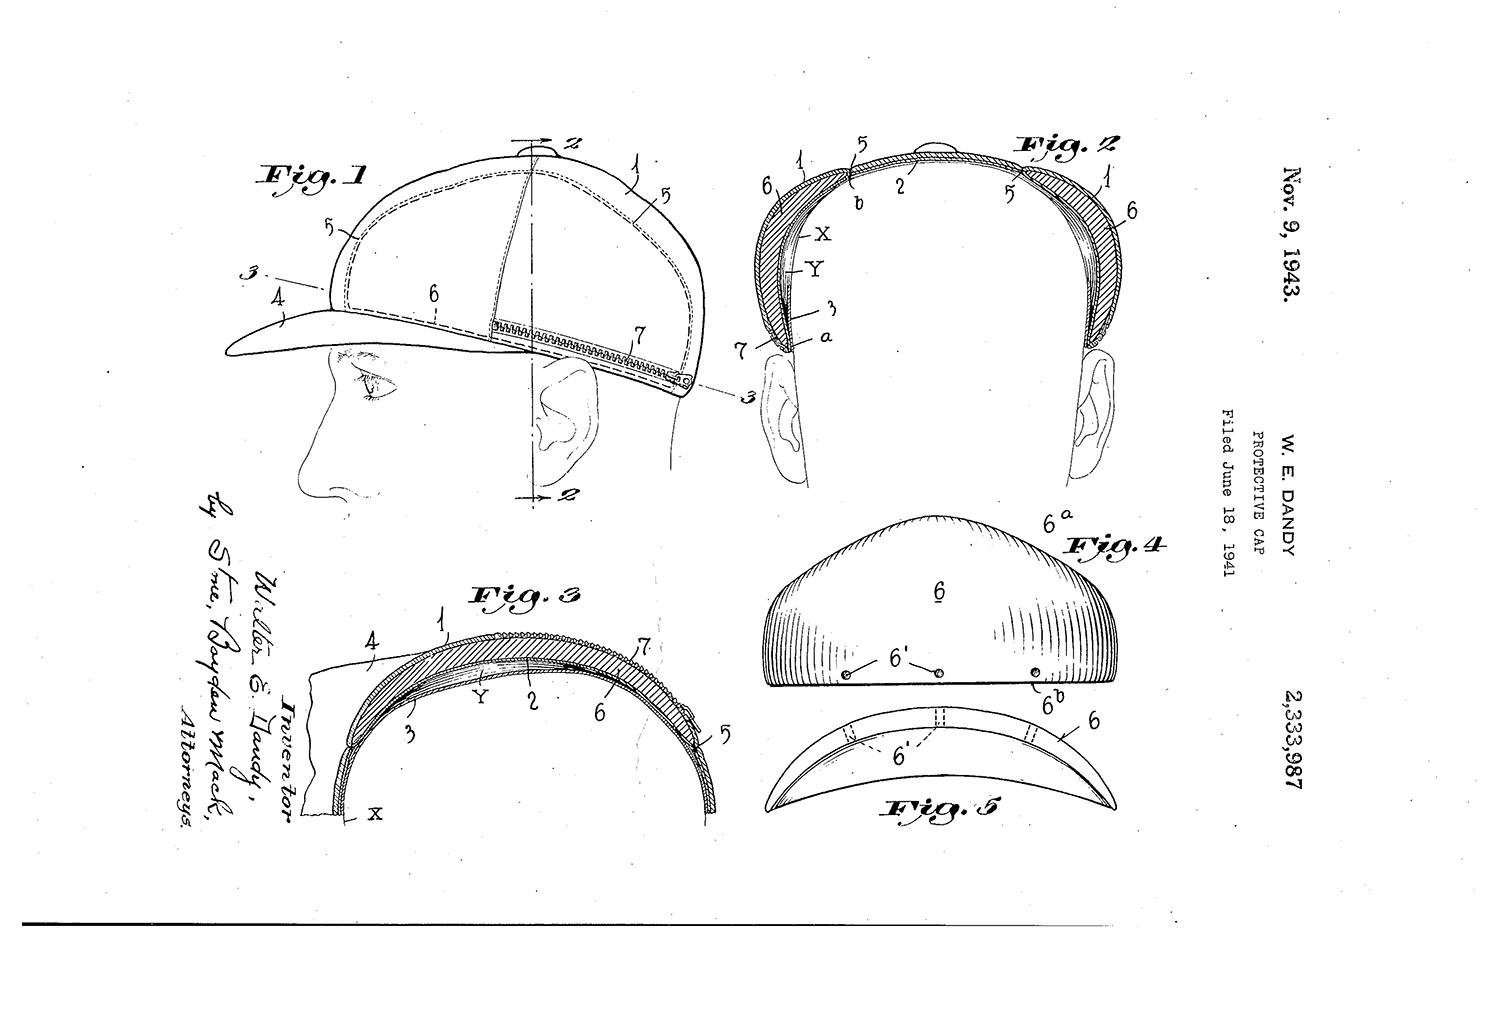 Pictured above are designs from the patent for the Protective Cap, attributed to Dr. Walter Dandy and Dr. George Bennett of Johns Hopkins University. (United States Patent and Trademark Office)